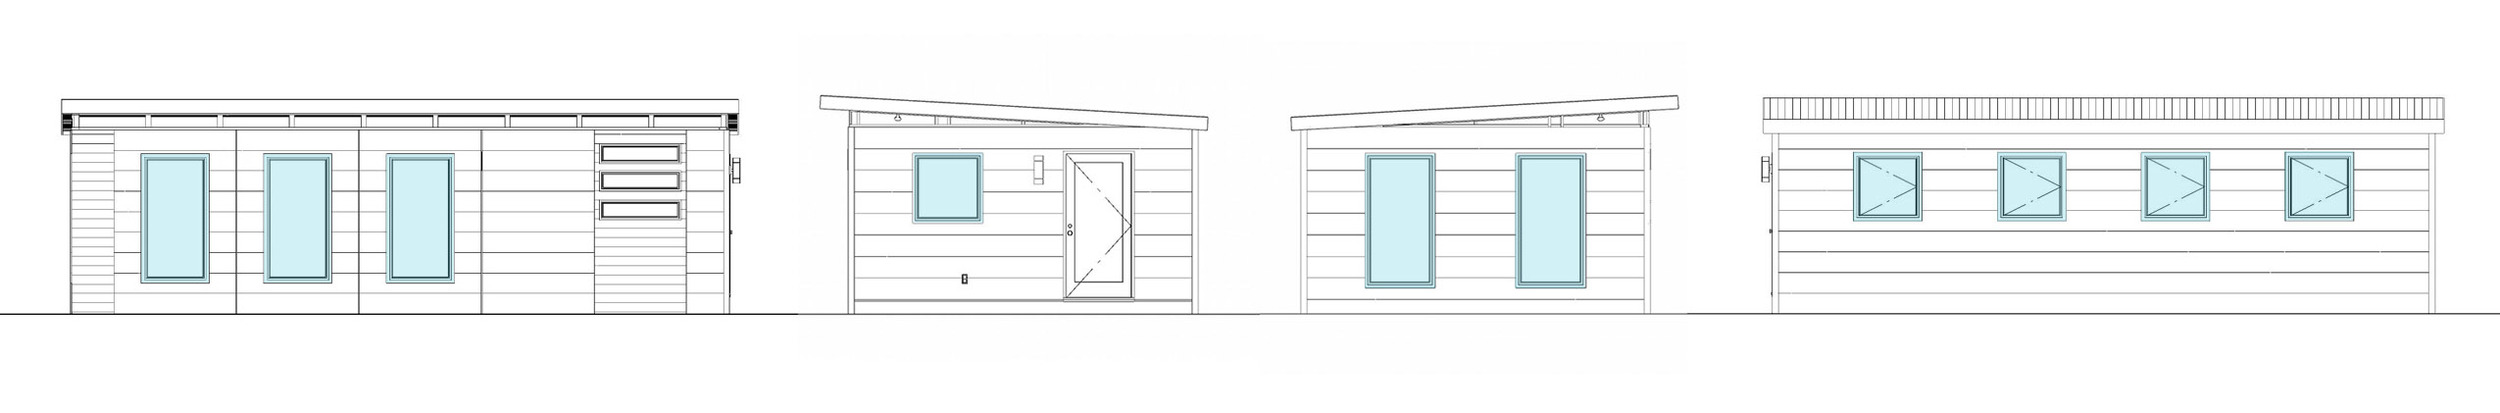 SideEntry Window Placement Option